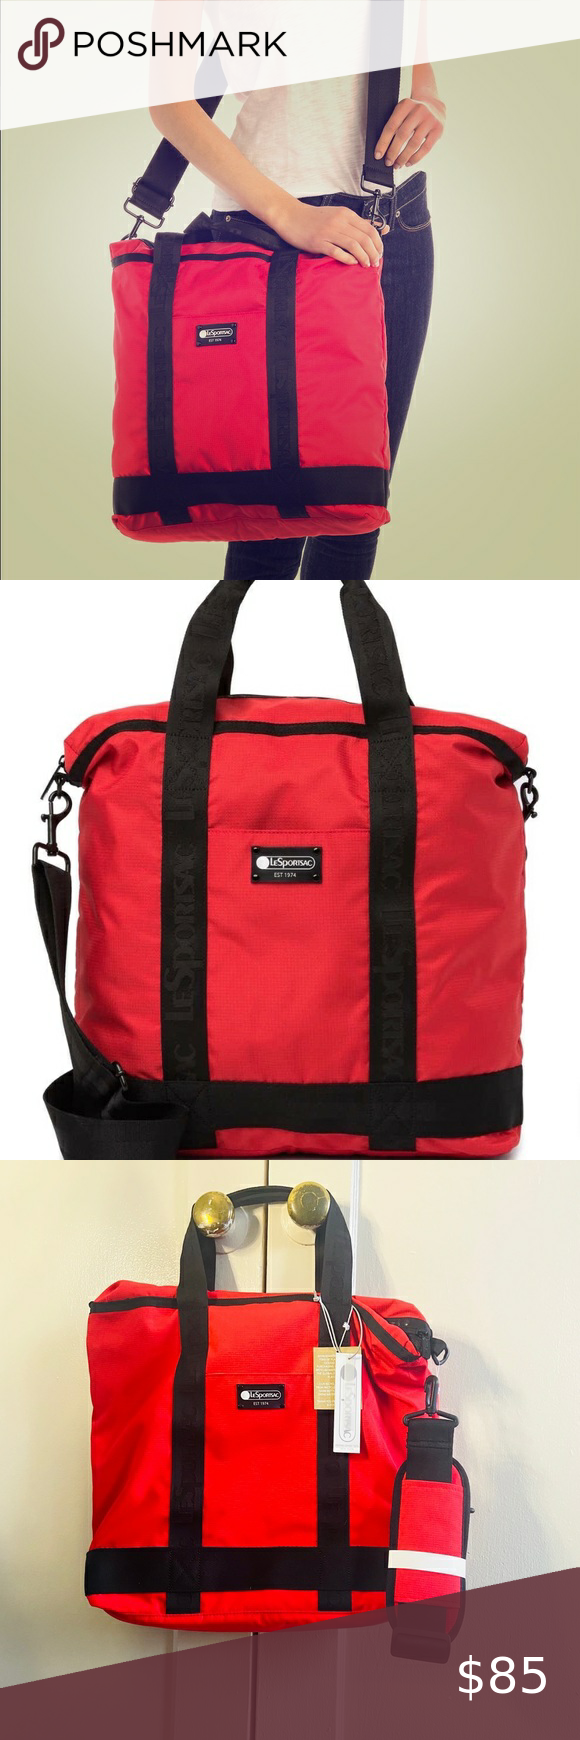 New Lesportsac Red Tote Travel Bag Red Tote Bags Travel Tote